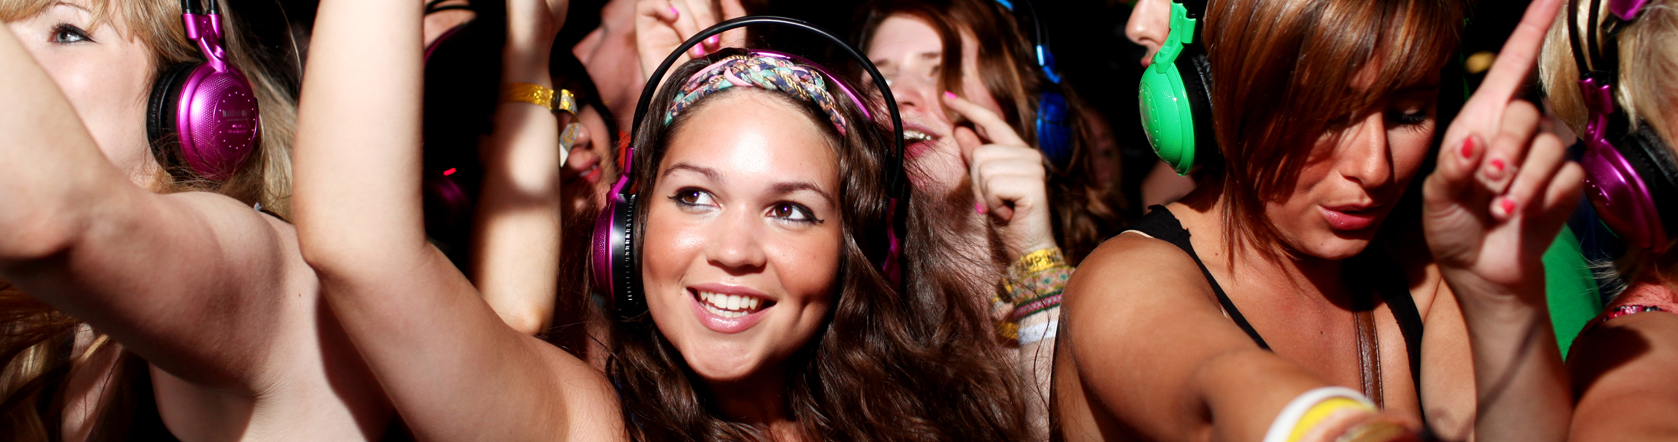 Partying hard at Creamfields